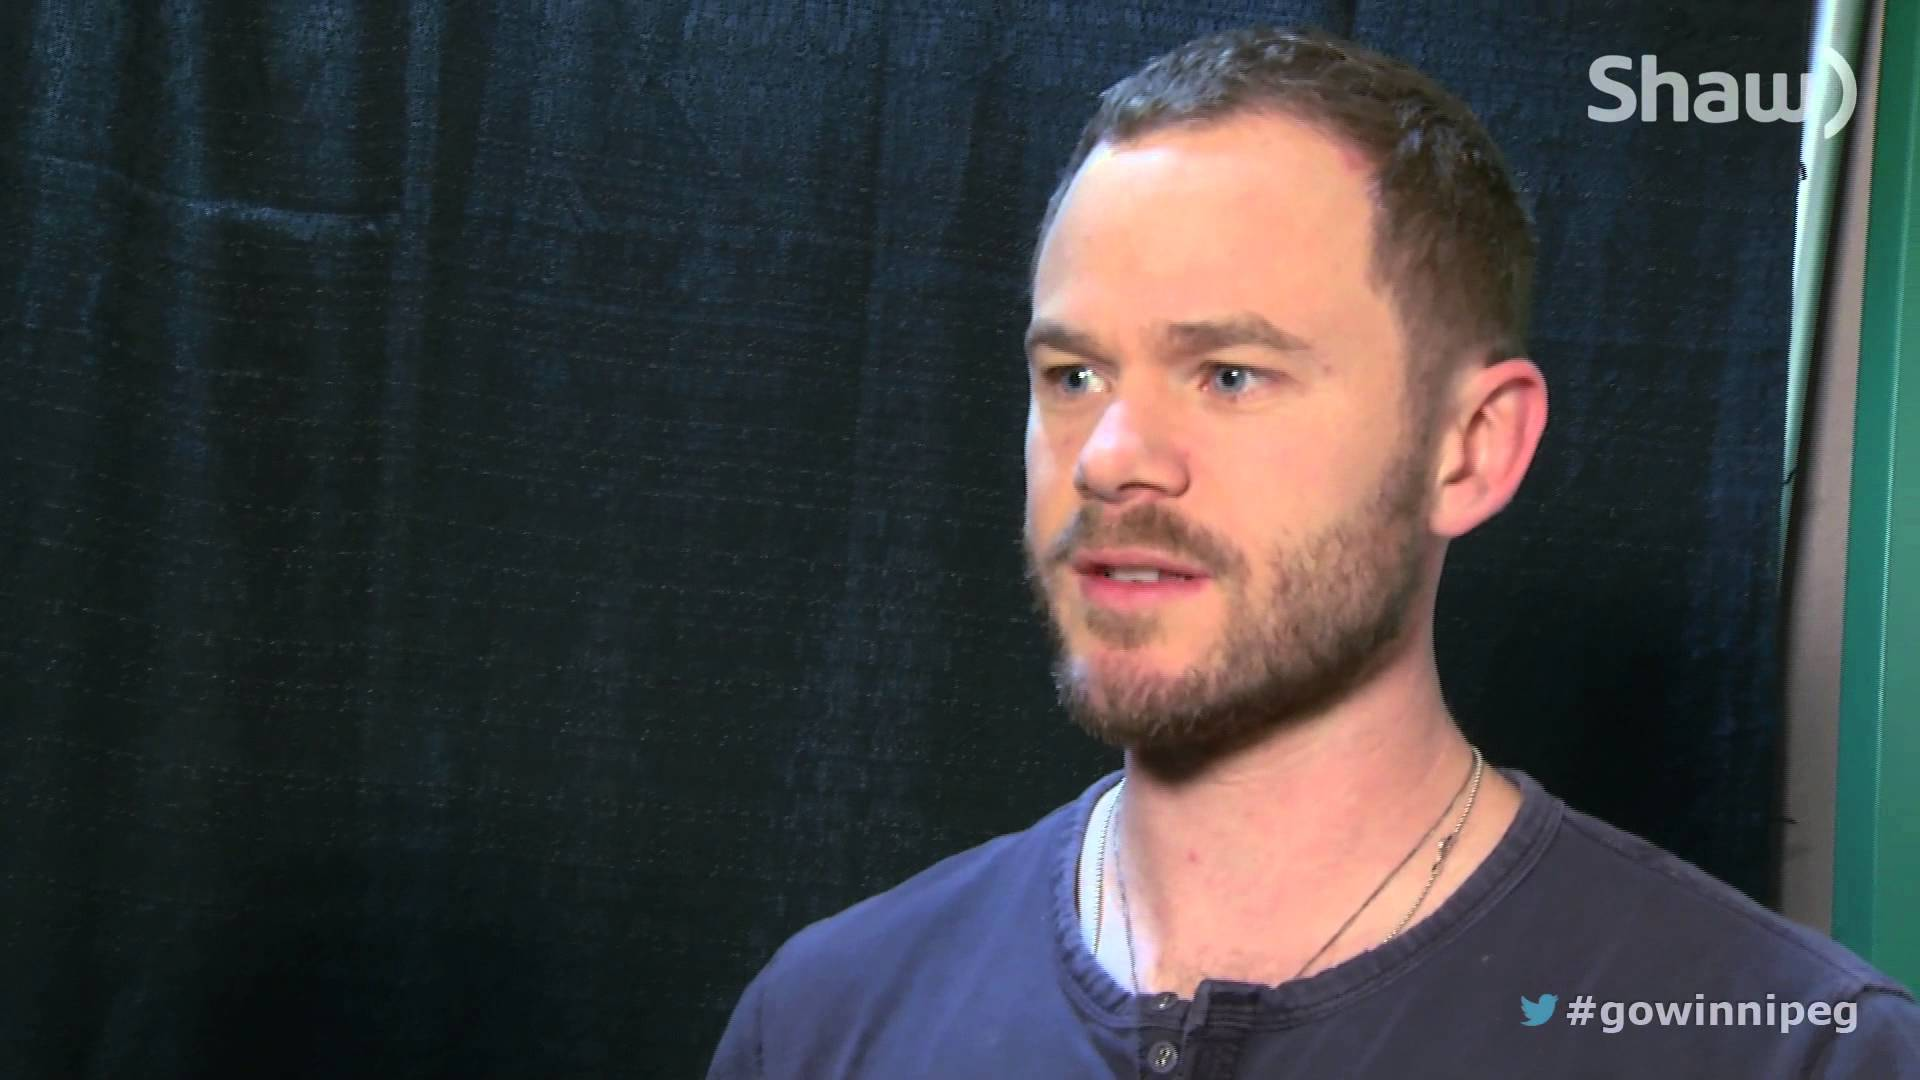 1920x1080 - Shawn Ashmore Wallpapers 15